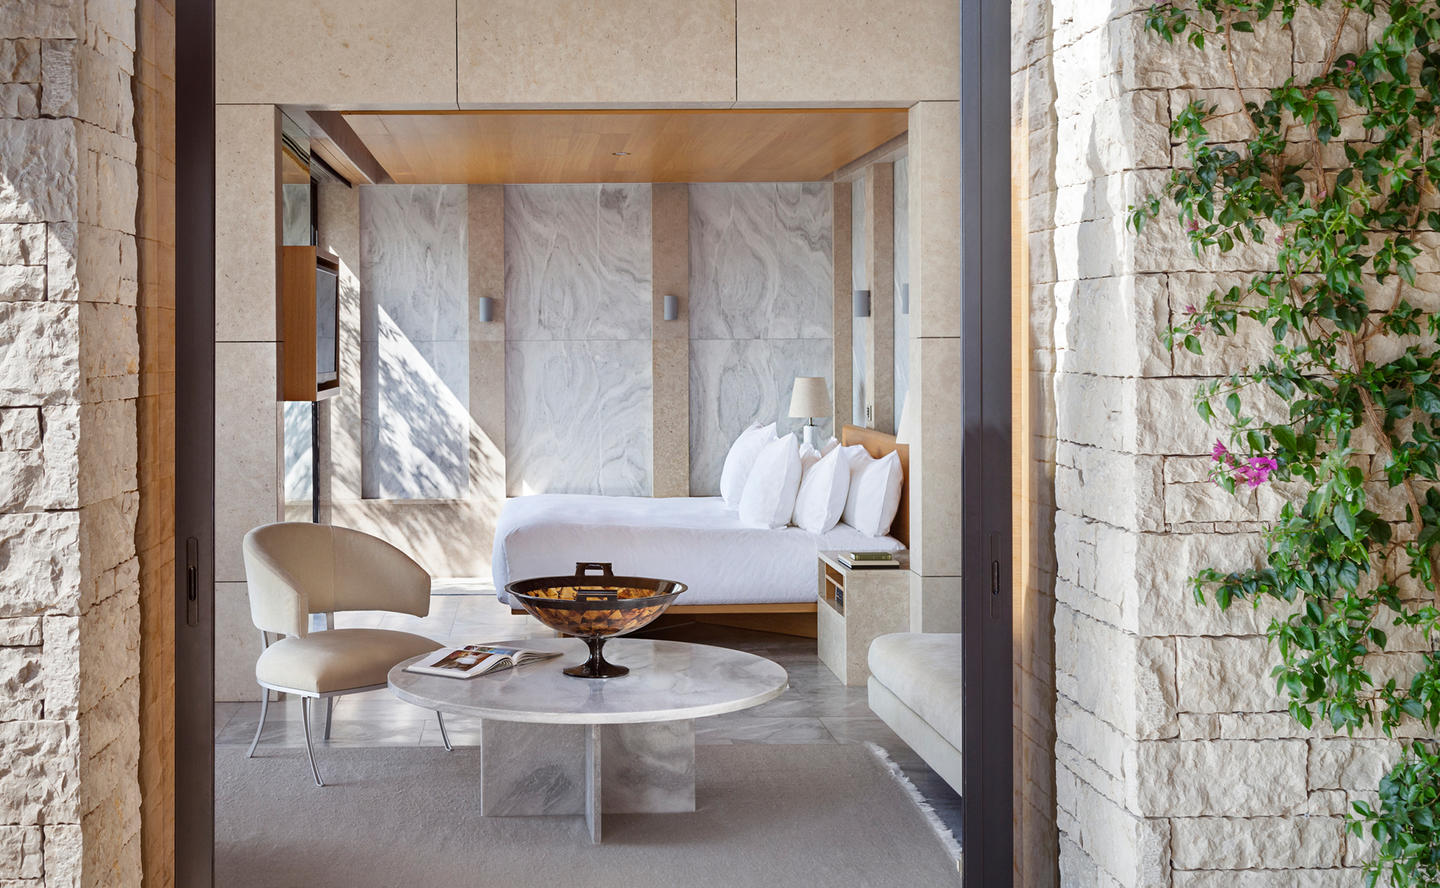 Bedroom, Amanzoe Villas, Greece